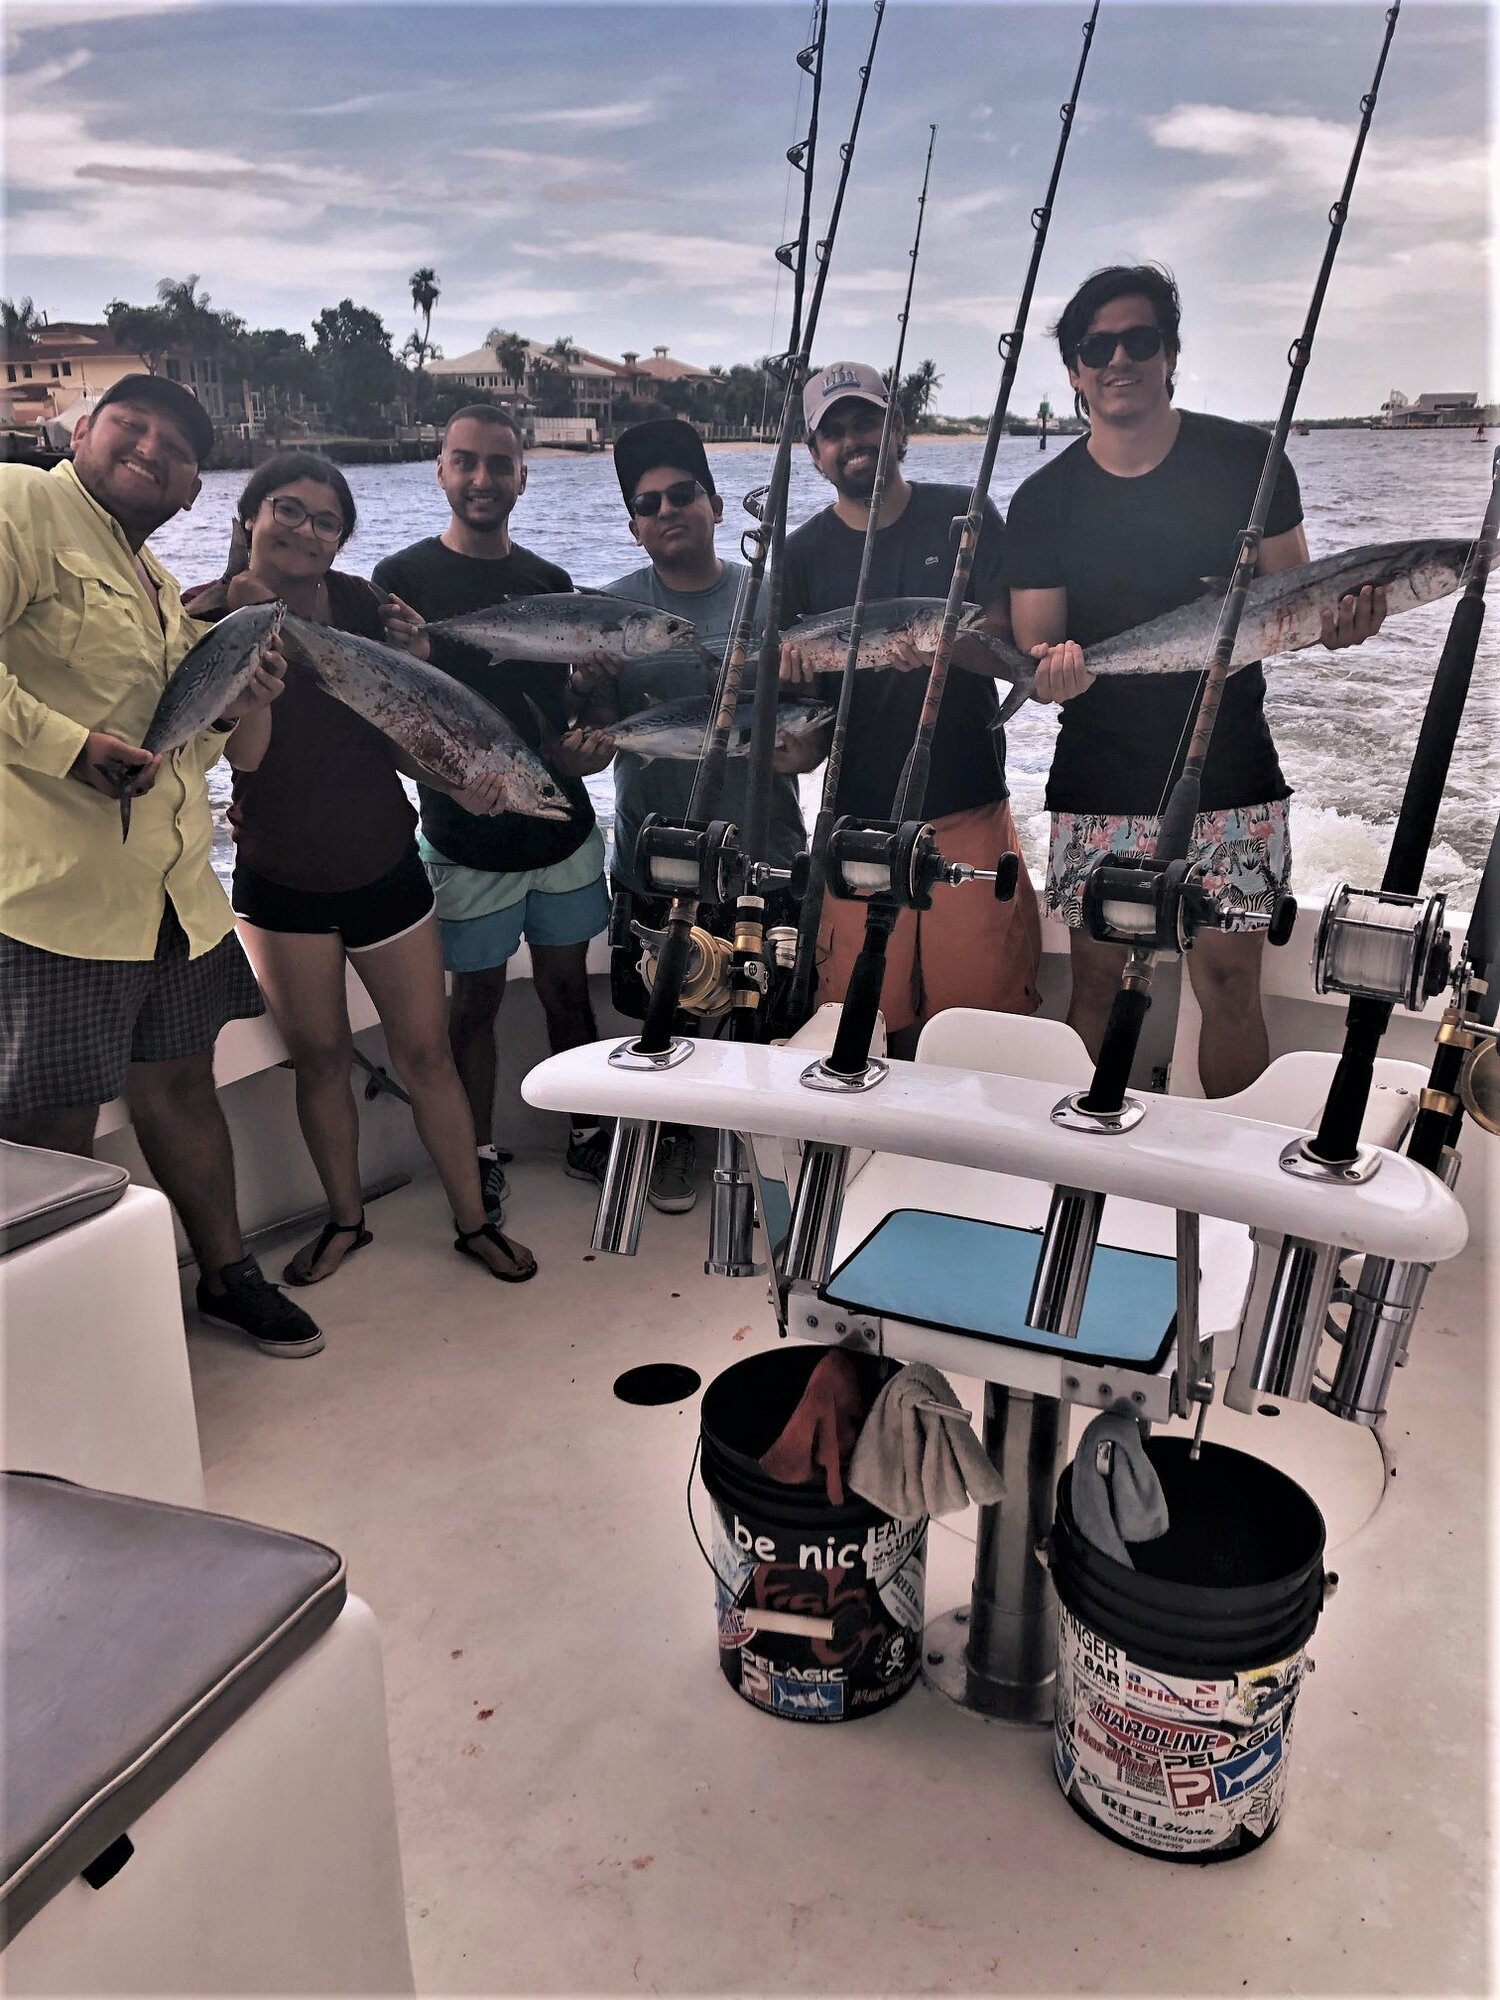 The Arcwerks team with their Best Boat prize-winning catch at AIA Ft. Lauderdale 2019 Fishing Tournament.